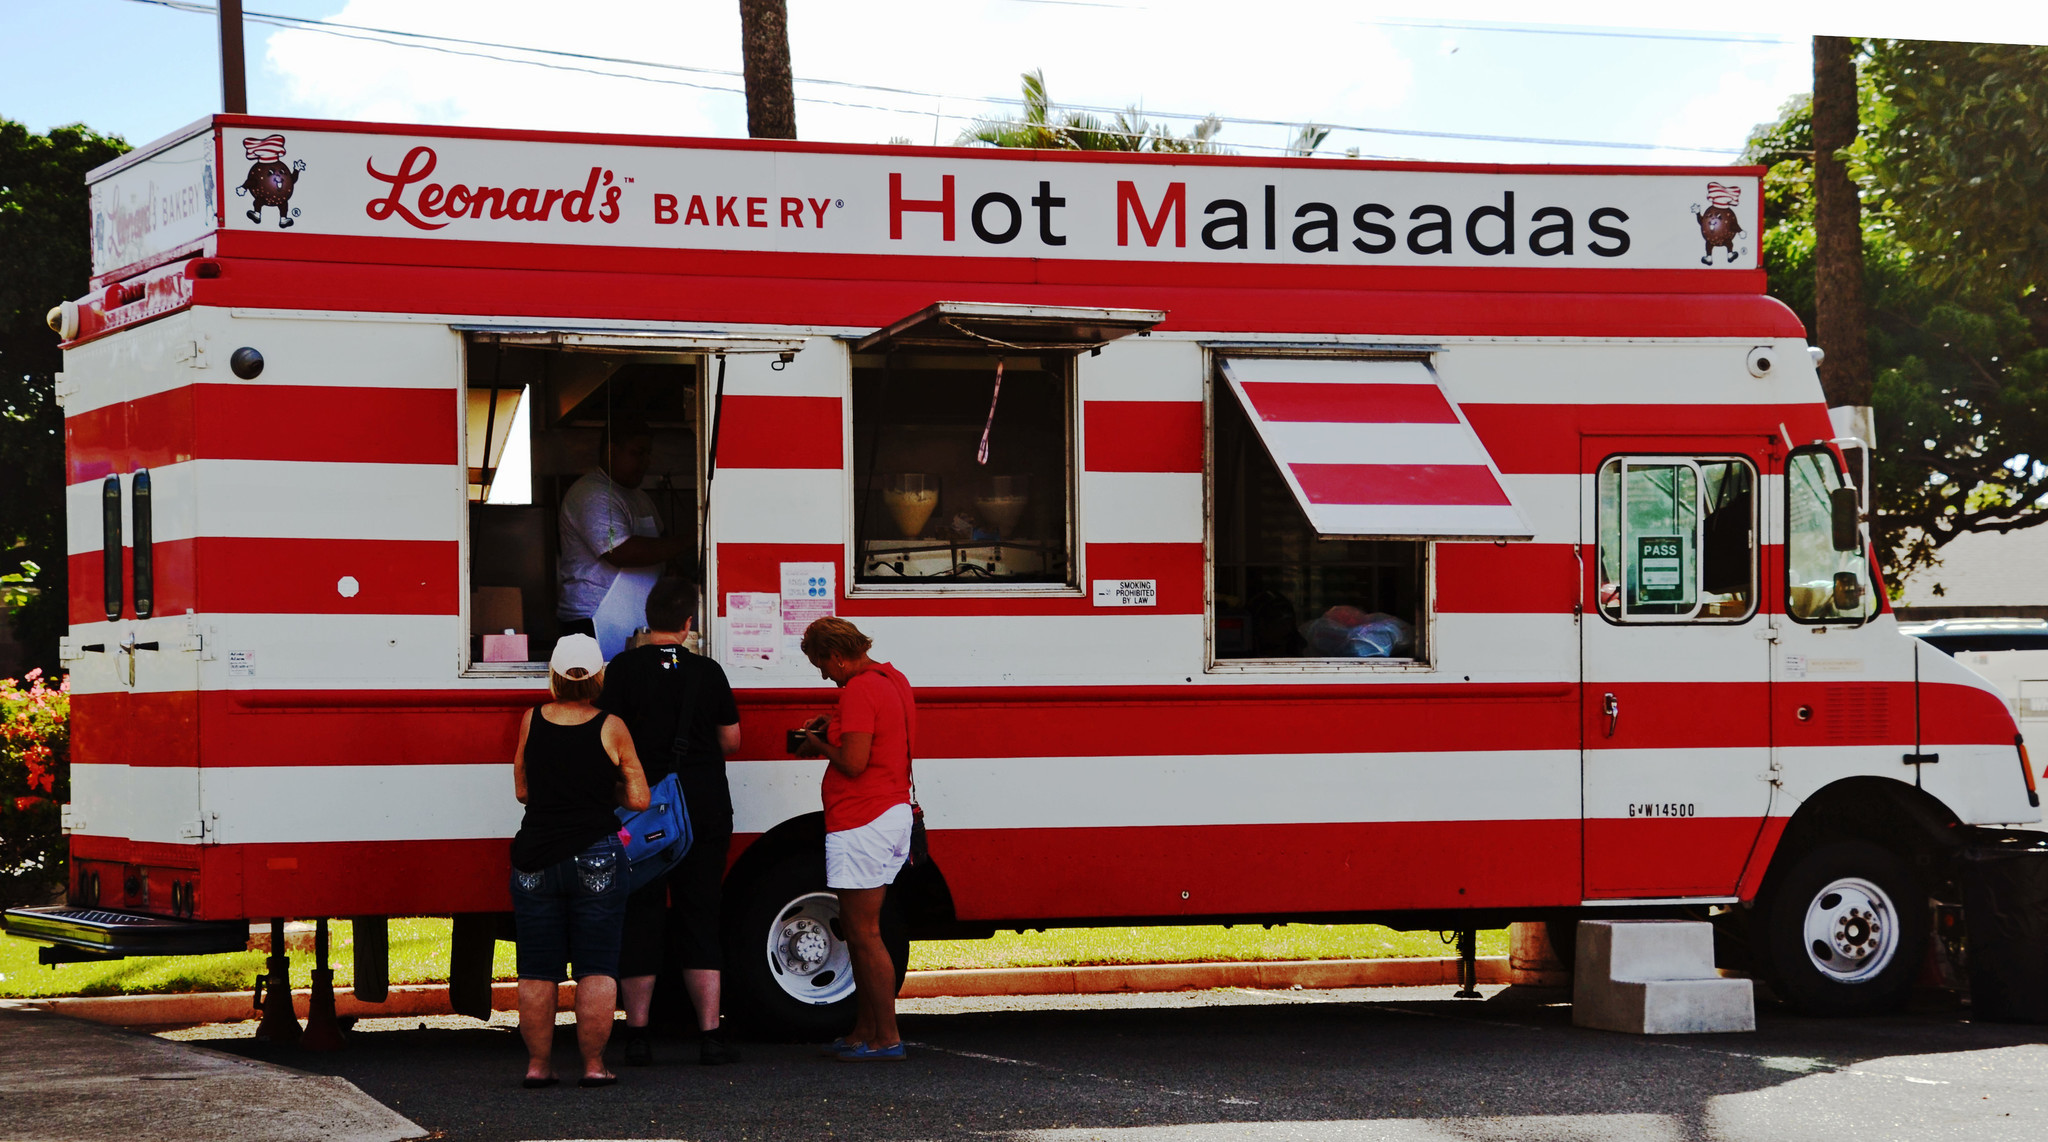 Leonard's, which specializes in malasadas, the Portuguese doughnuts, now has Malasada Mobiles (this one is in Hawaii Kai) that sell their special confections, including a li hing flavor.